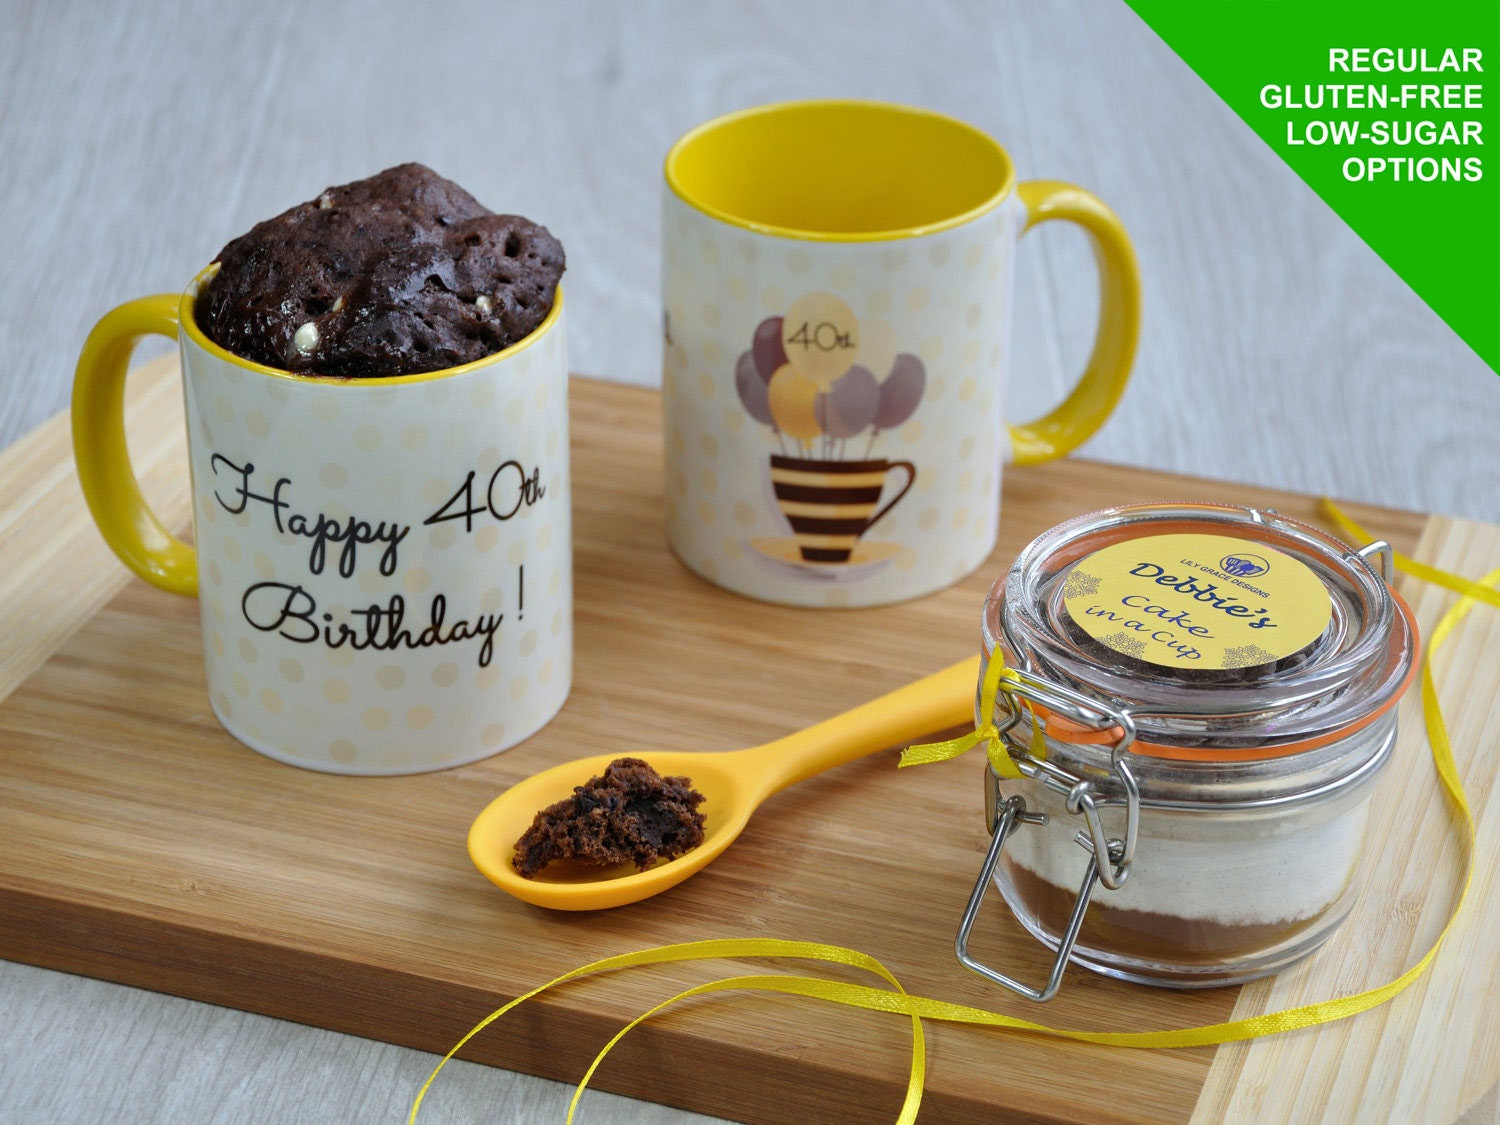 Happy 40th Birthday Chocolate Mug Cake Gift Set With